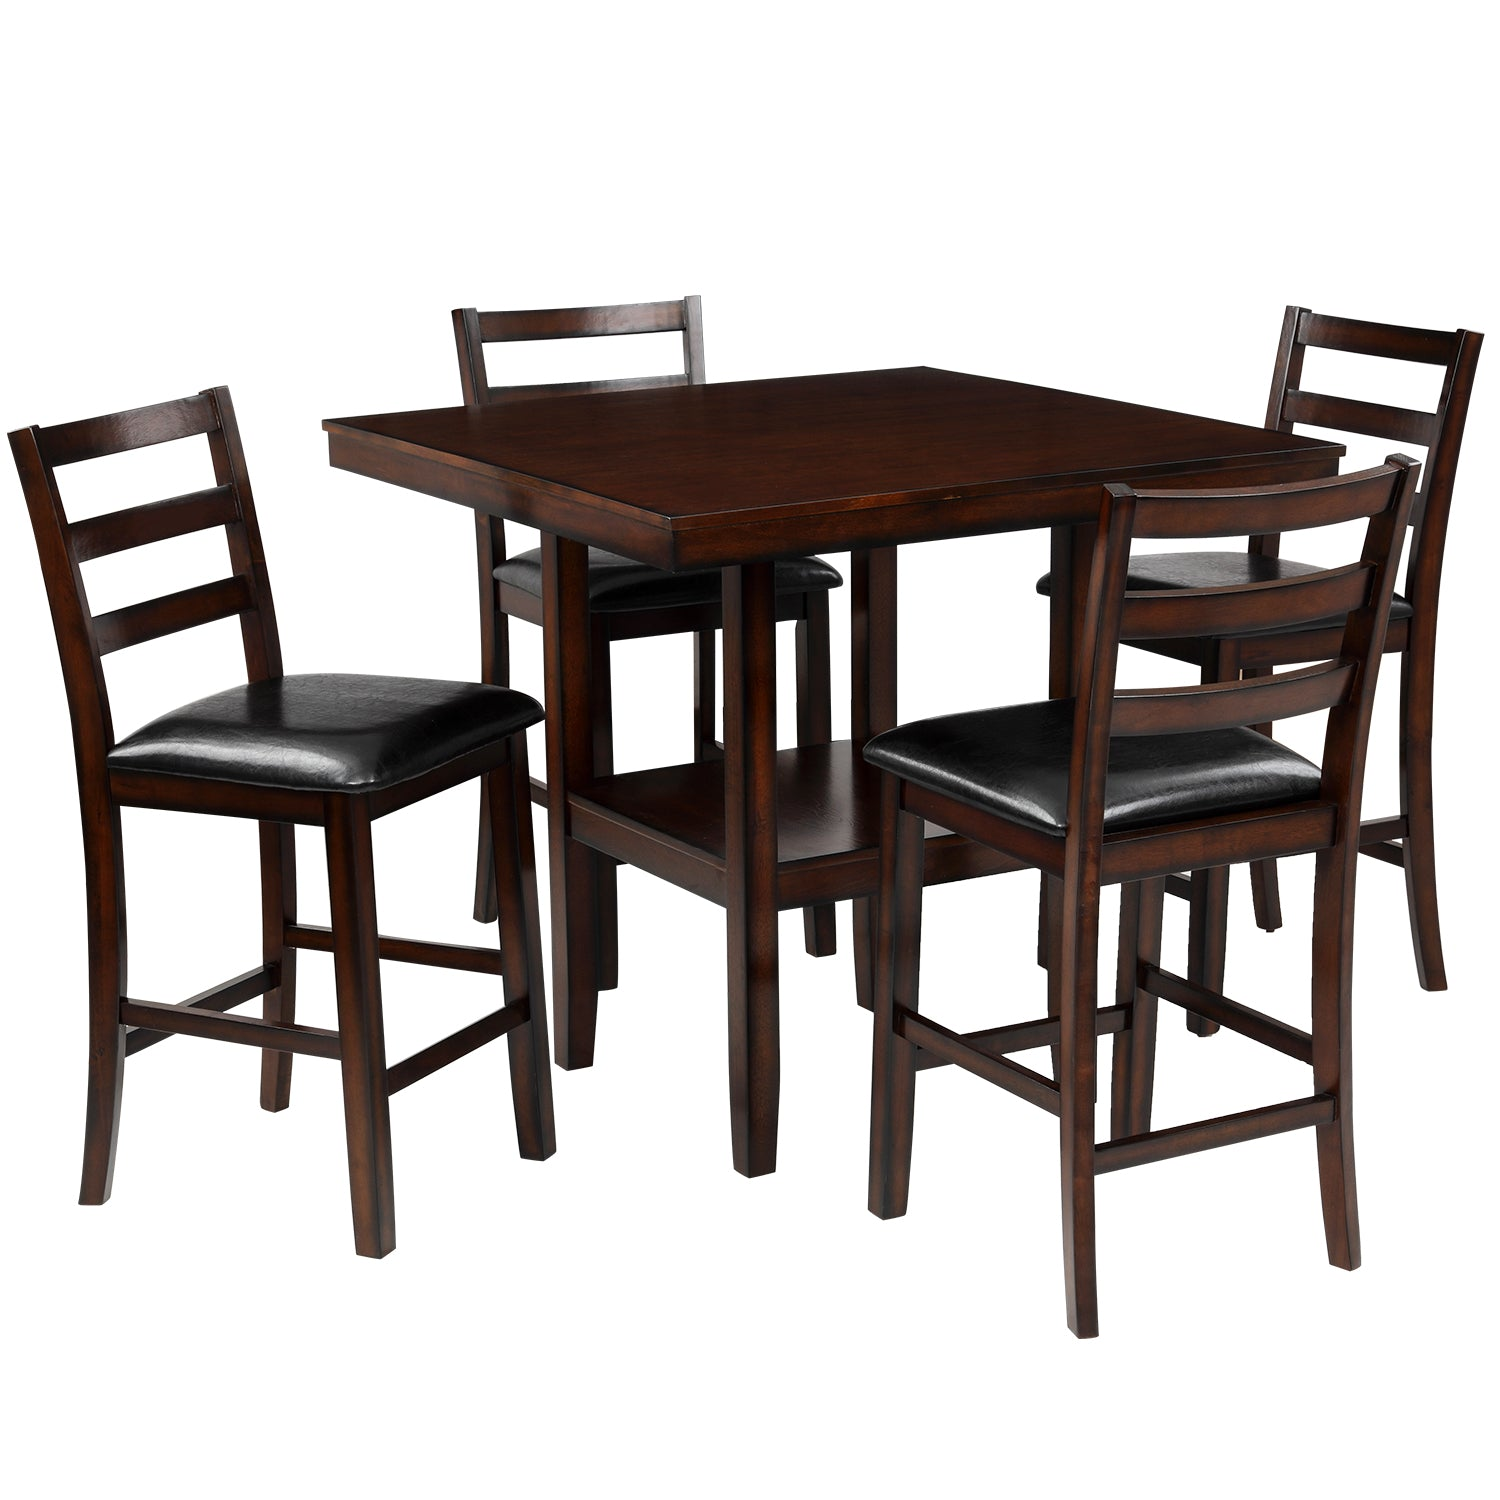 5-Piece Wooden Counter Height Dining Set